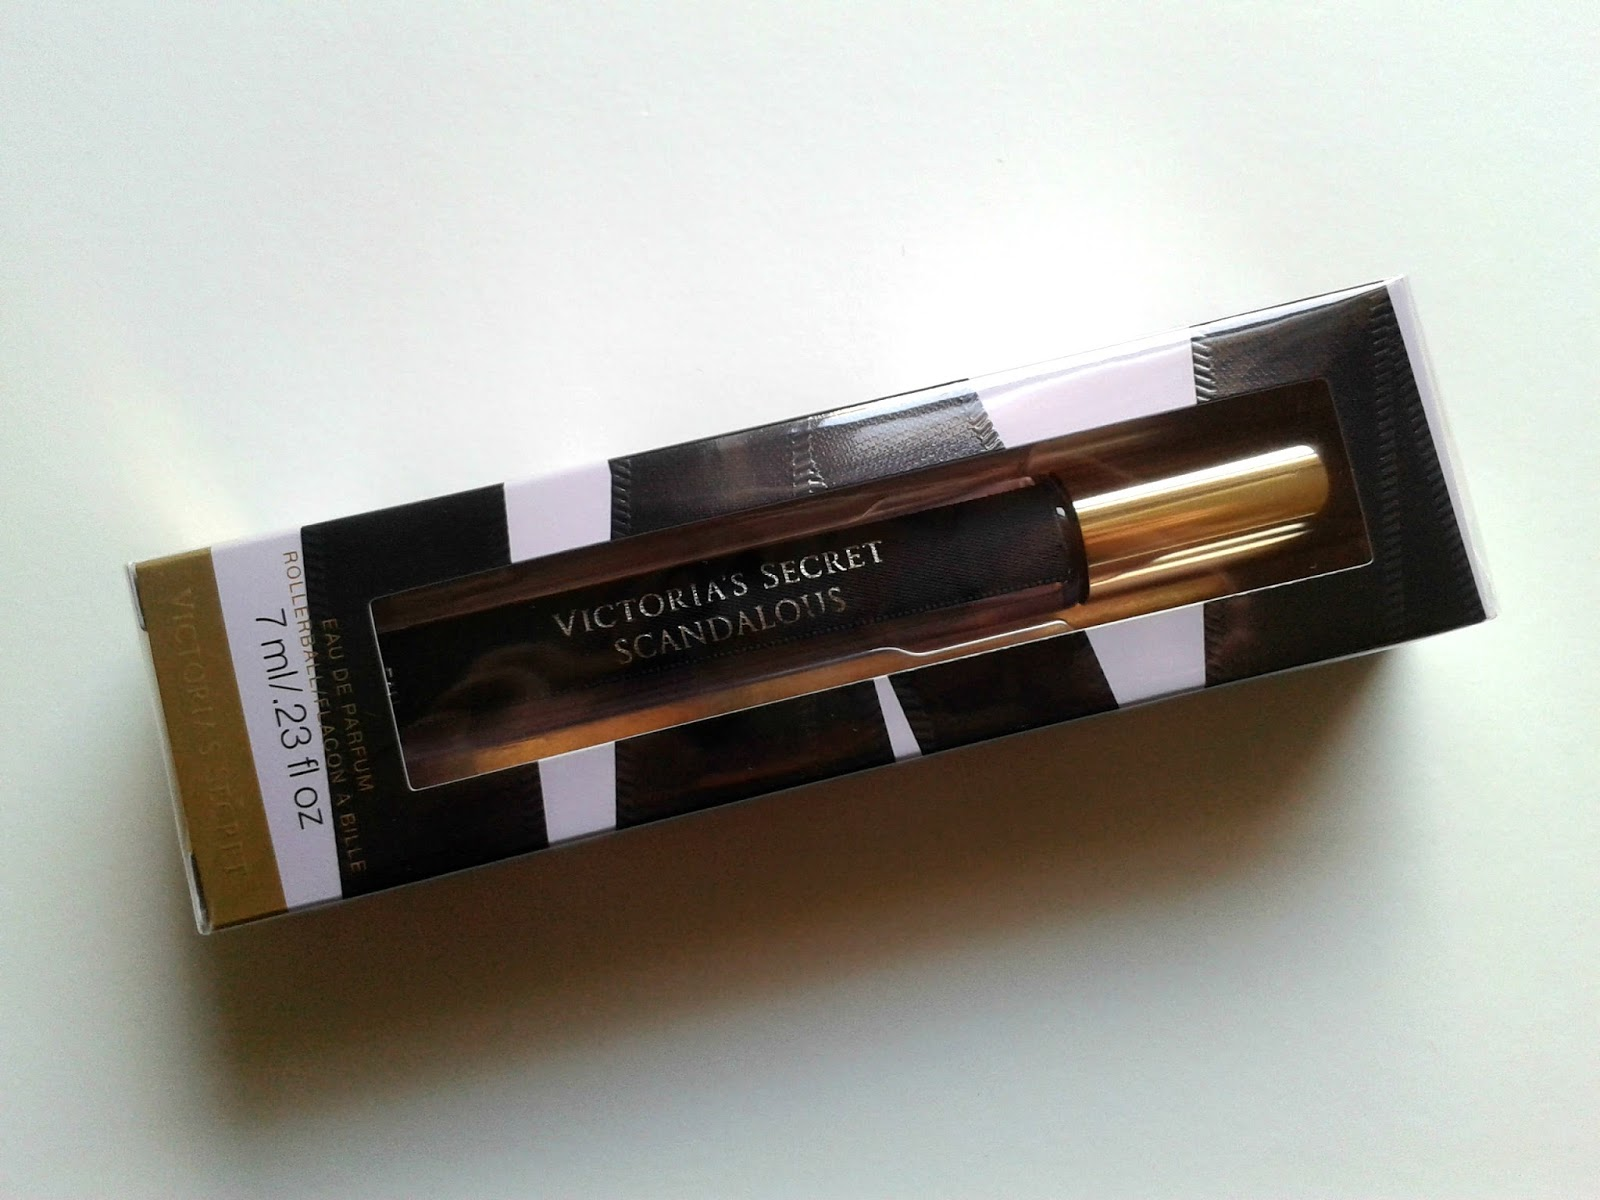 Victoria's Secret Scandalous Rollerball Beauty Haul